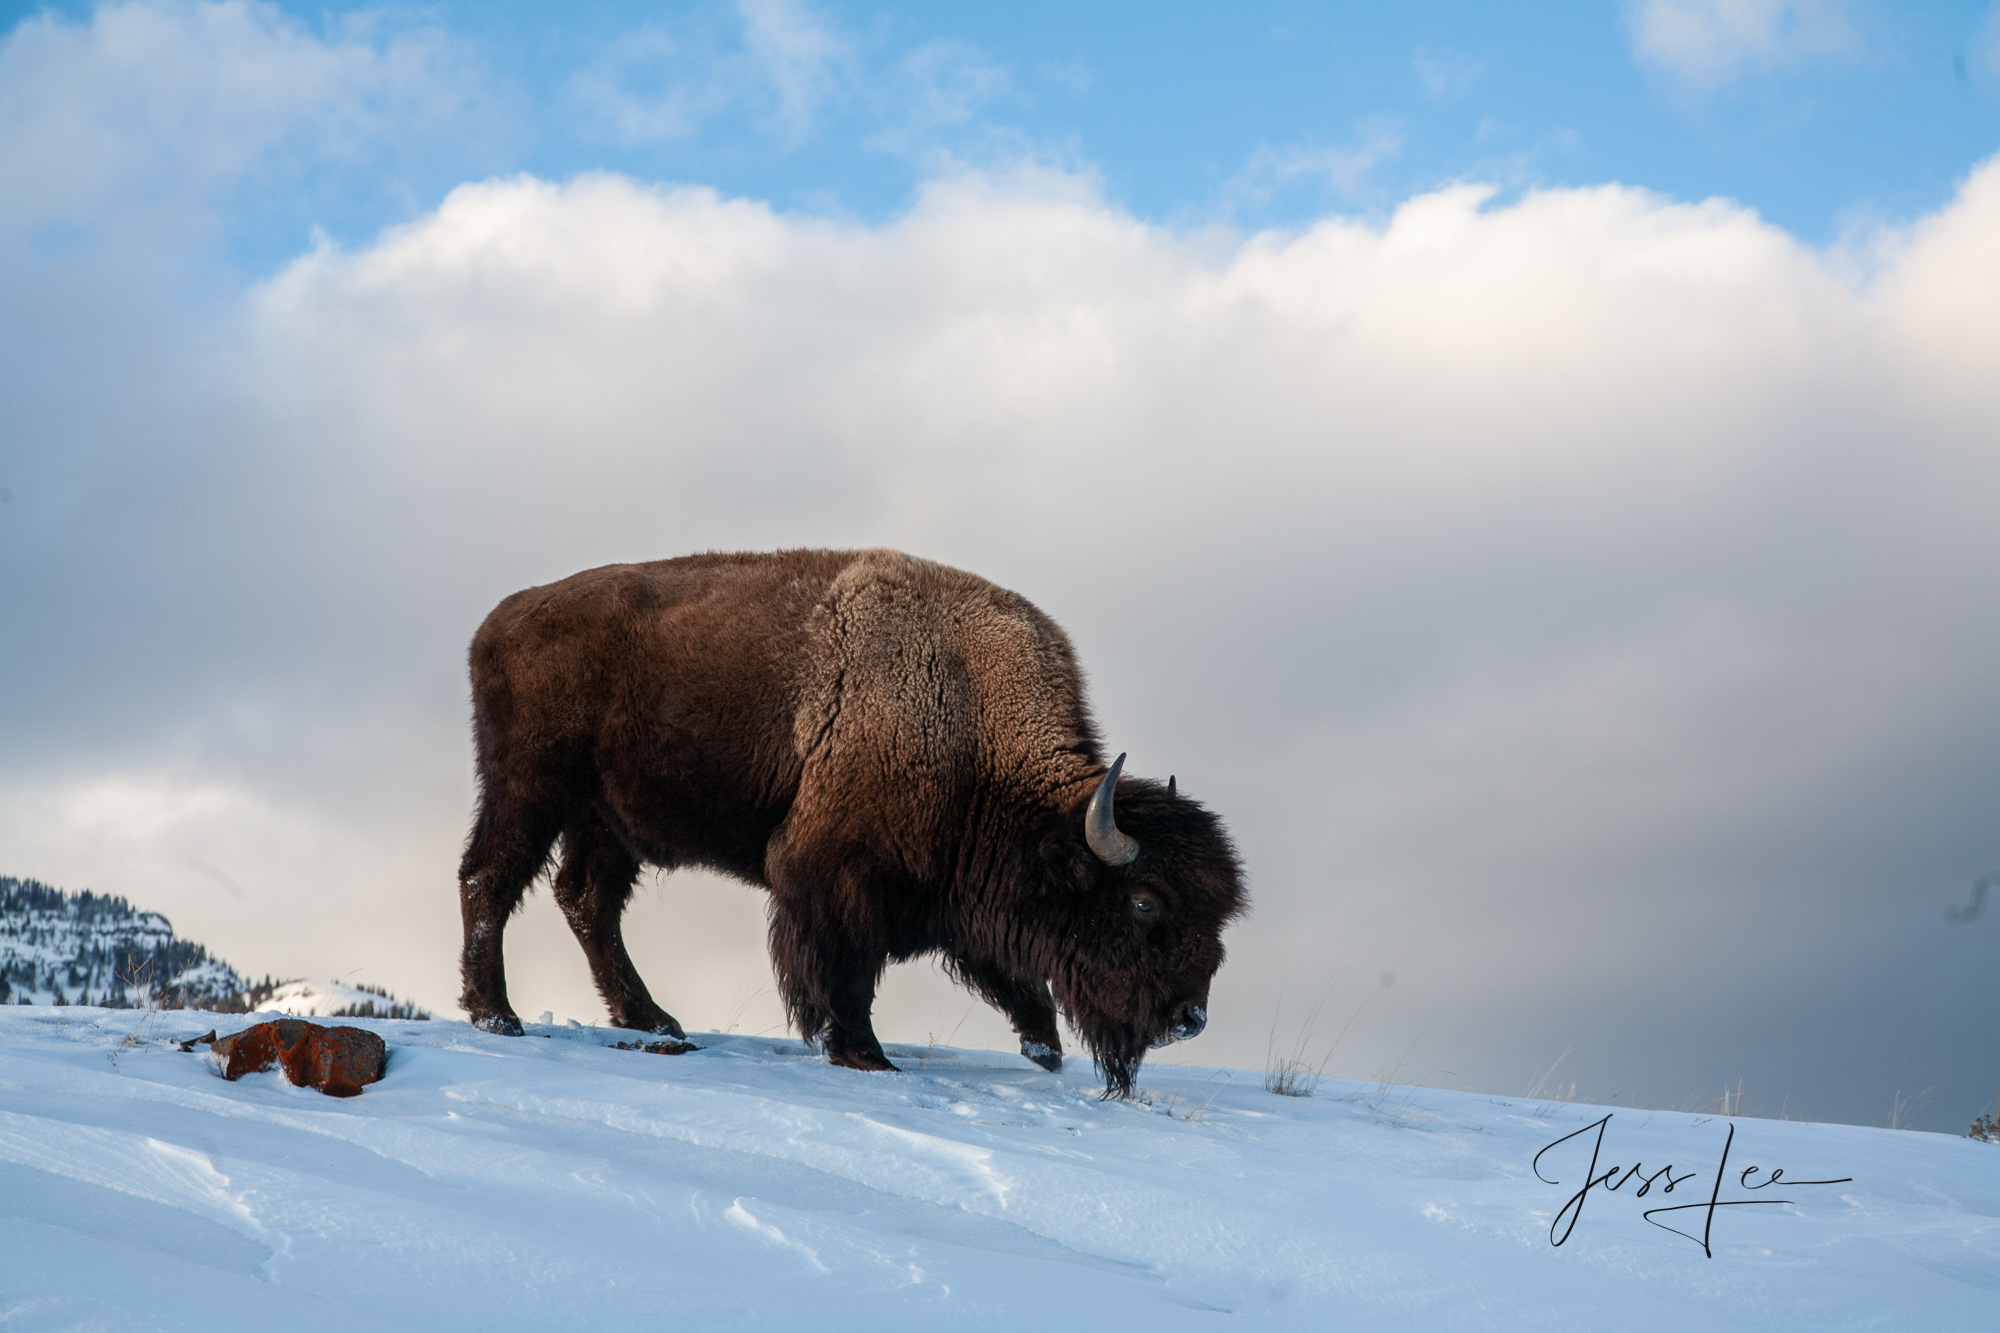 Bison in snow at yellowstone, winter , 07, snow, photo